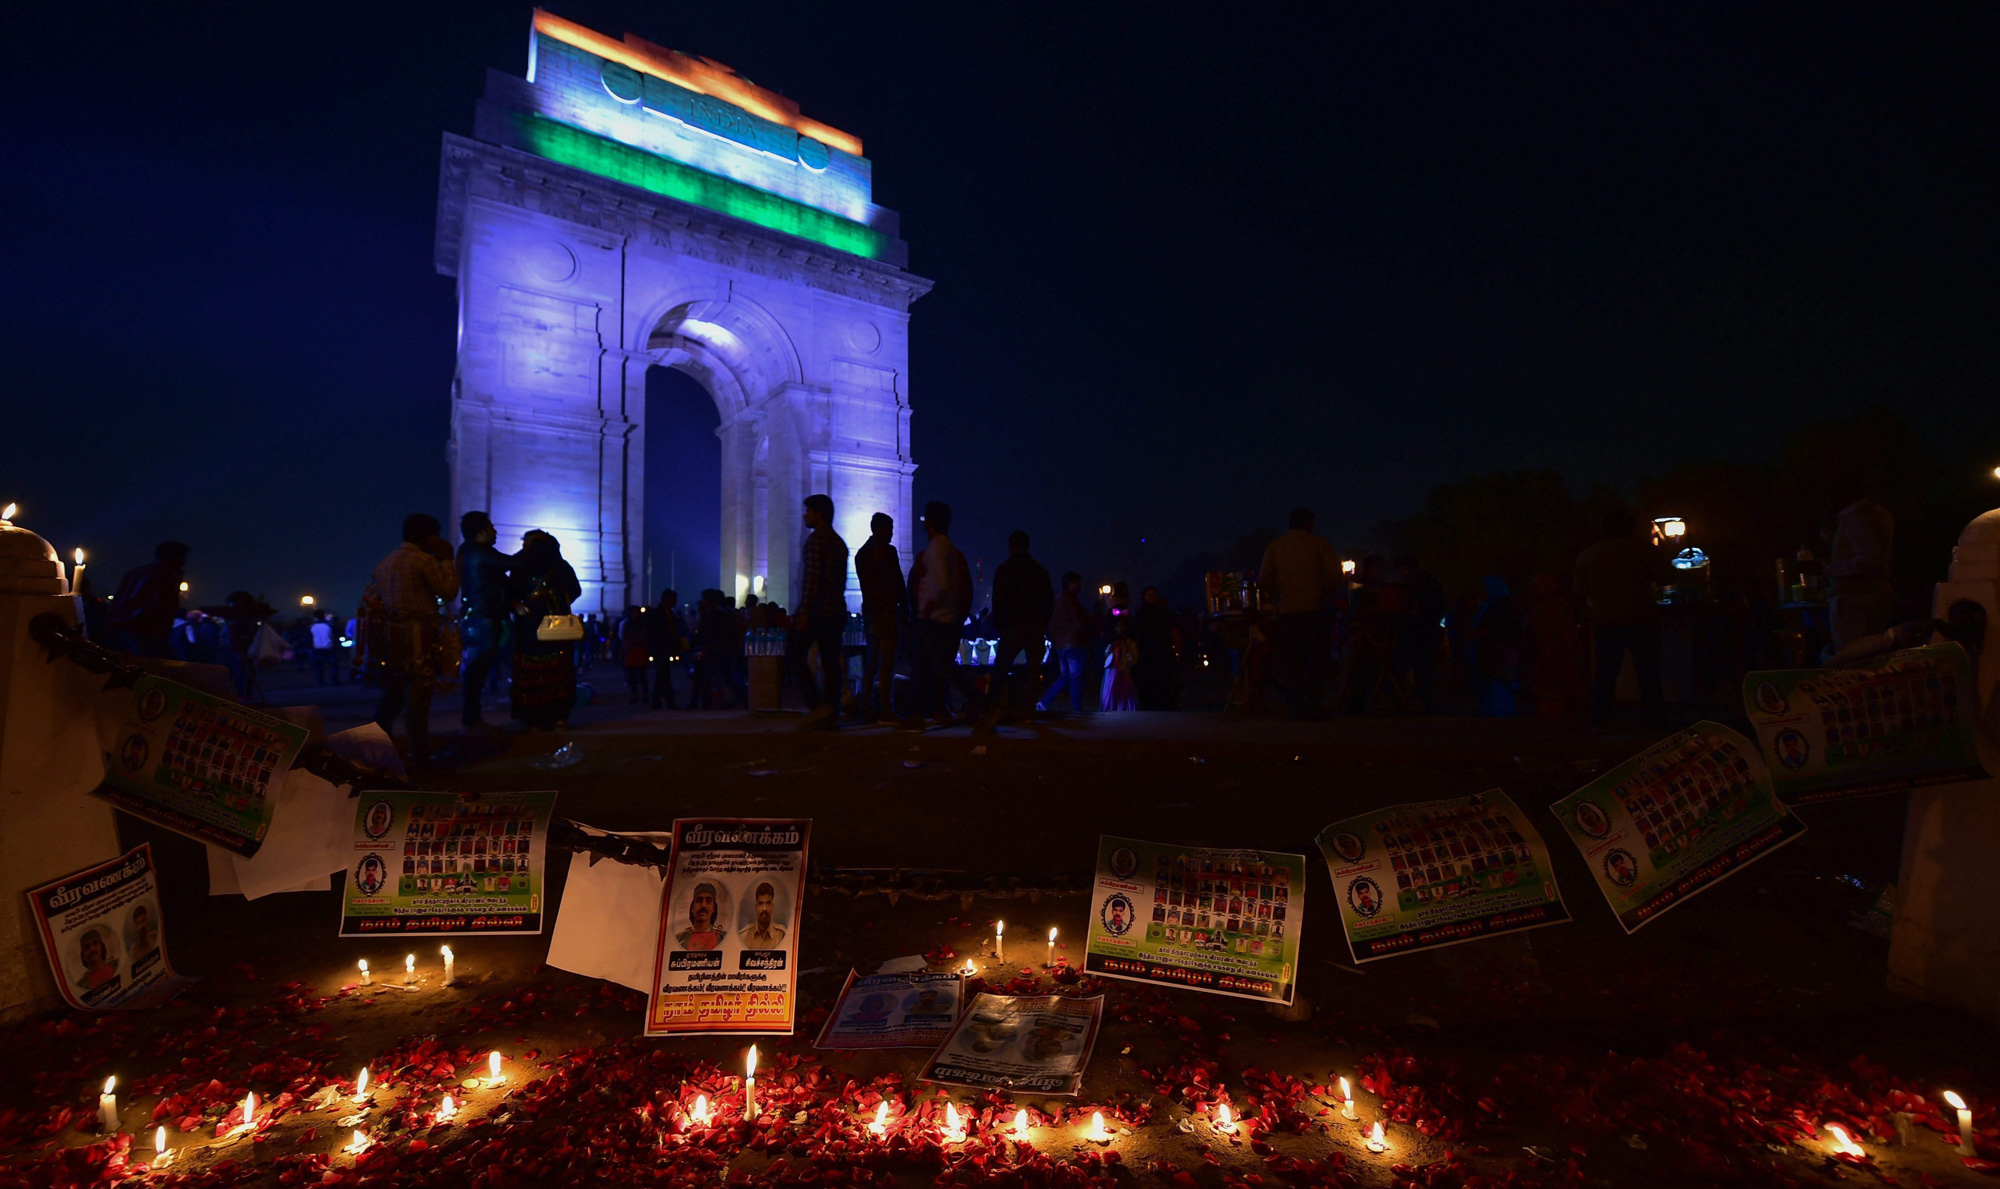 People participate in a candle light vigil to offer tributes to the martyred CRPF jawans of Pulwama terror attack, at India Gate in New Delhi on Sunday, February 17, 2019.